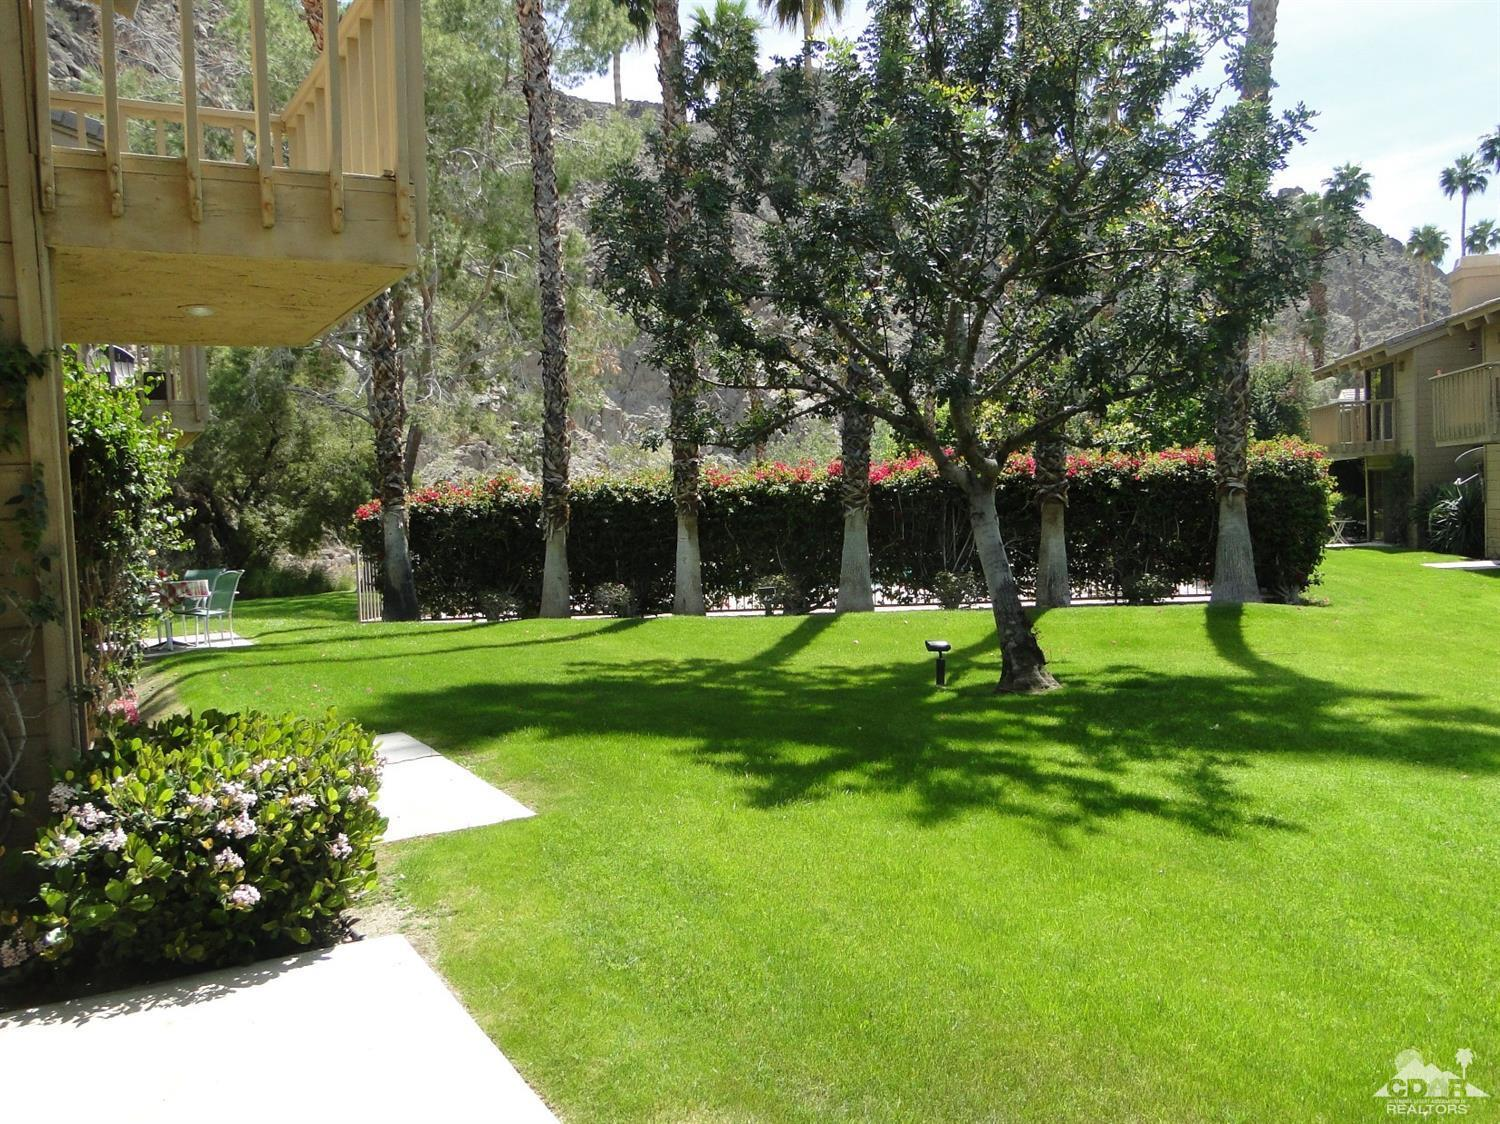 Photo of 46629 Arapahoe #A, Indian Wells, CA 92210